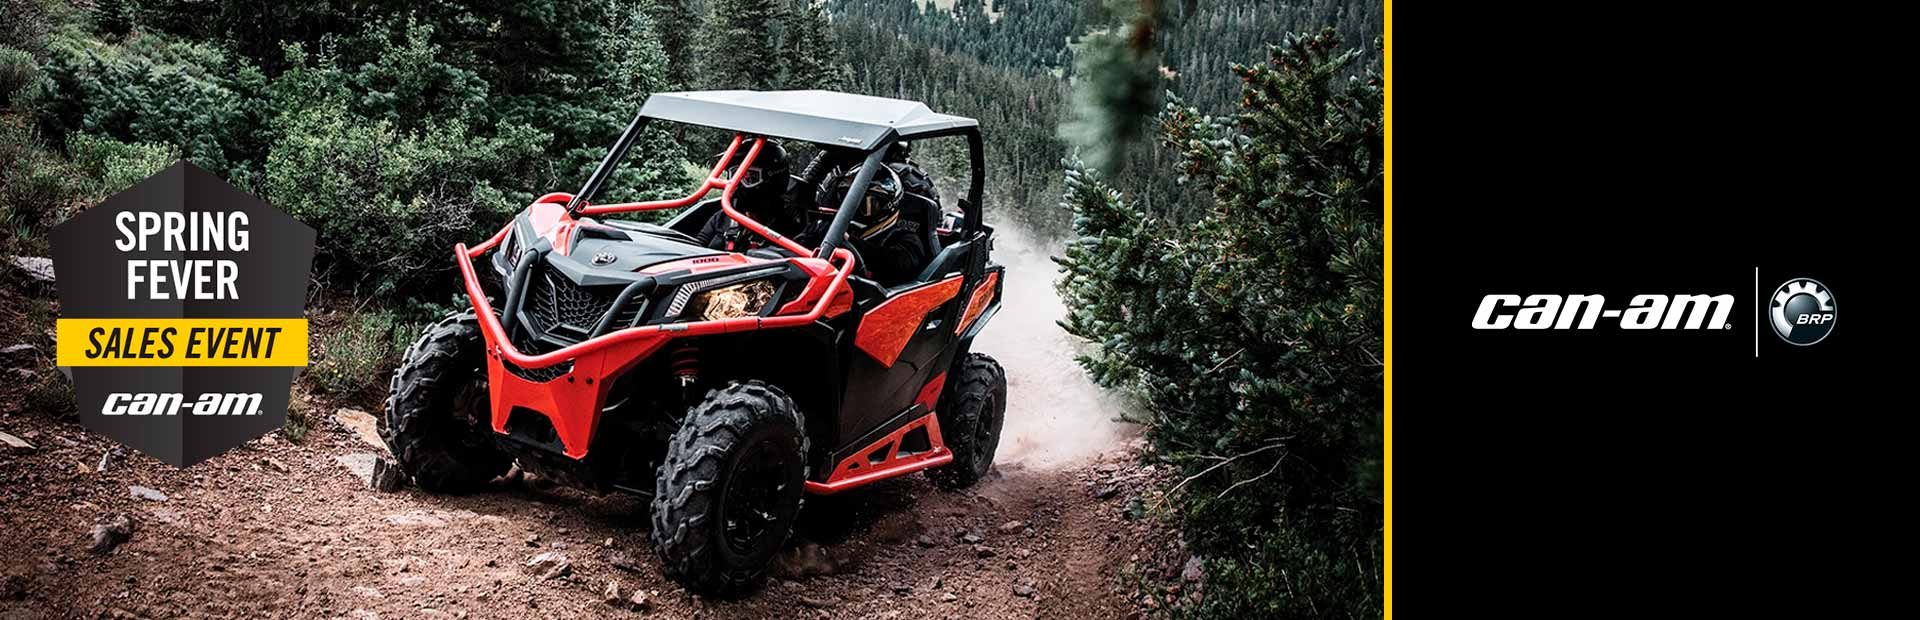 Can-Am: Spring Fever Sales Event-Maverick